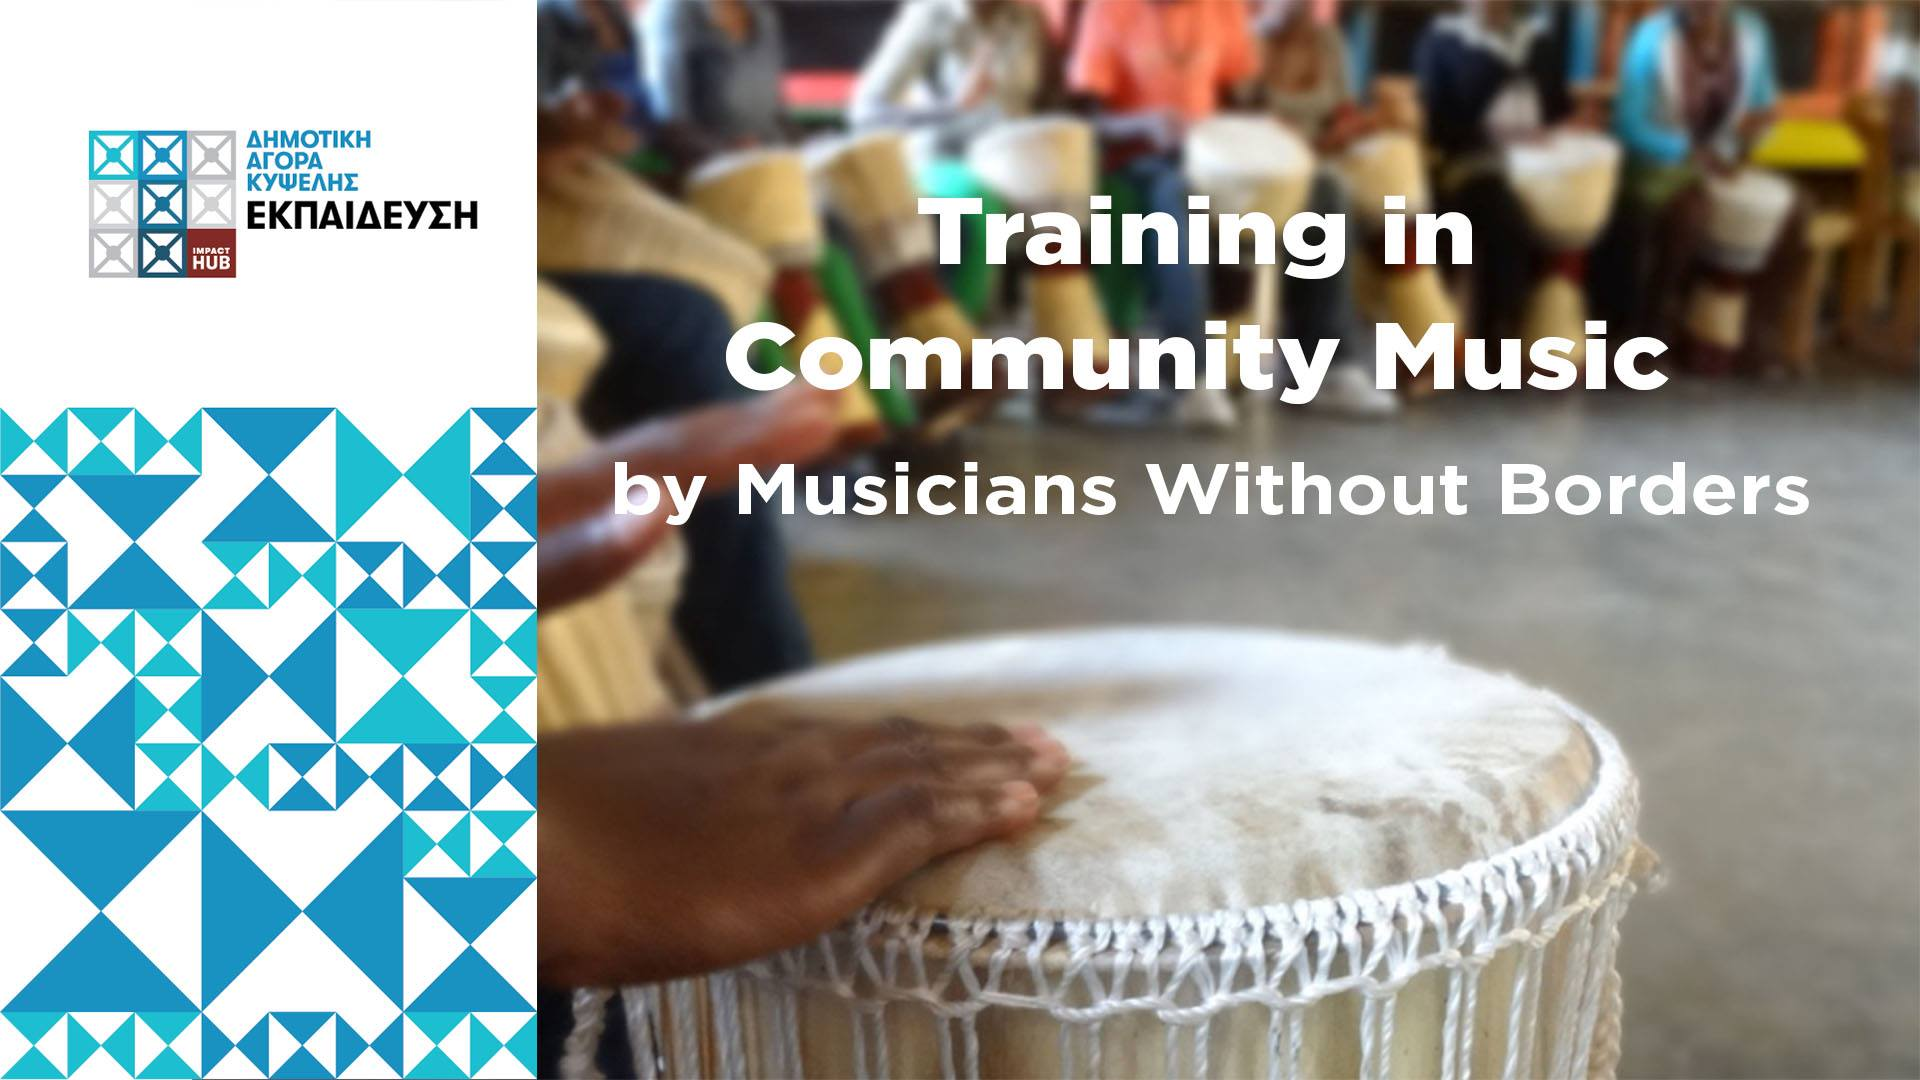 Training in Community Music by Musicians Without Borders